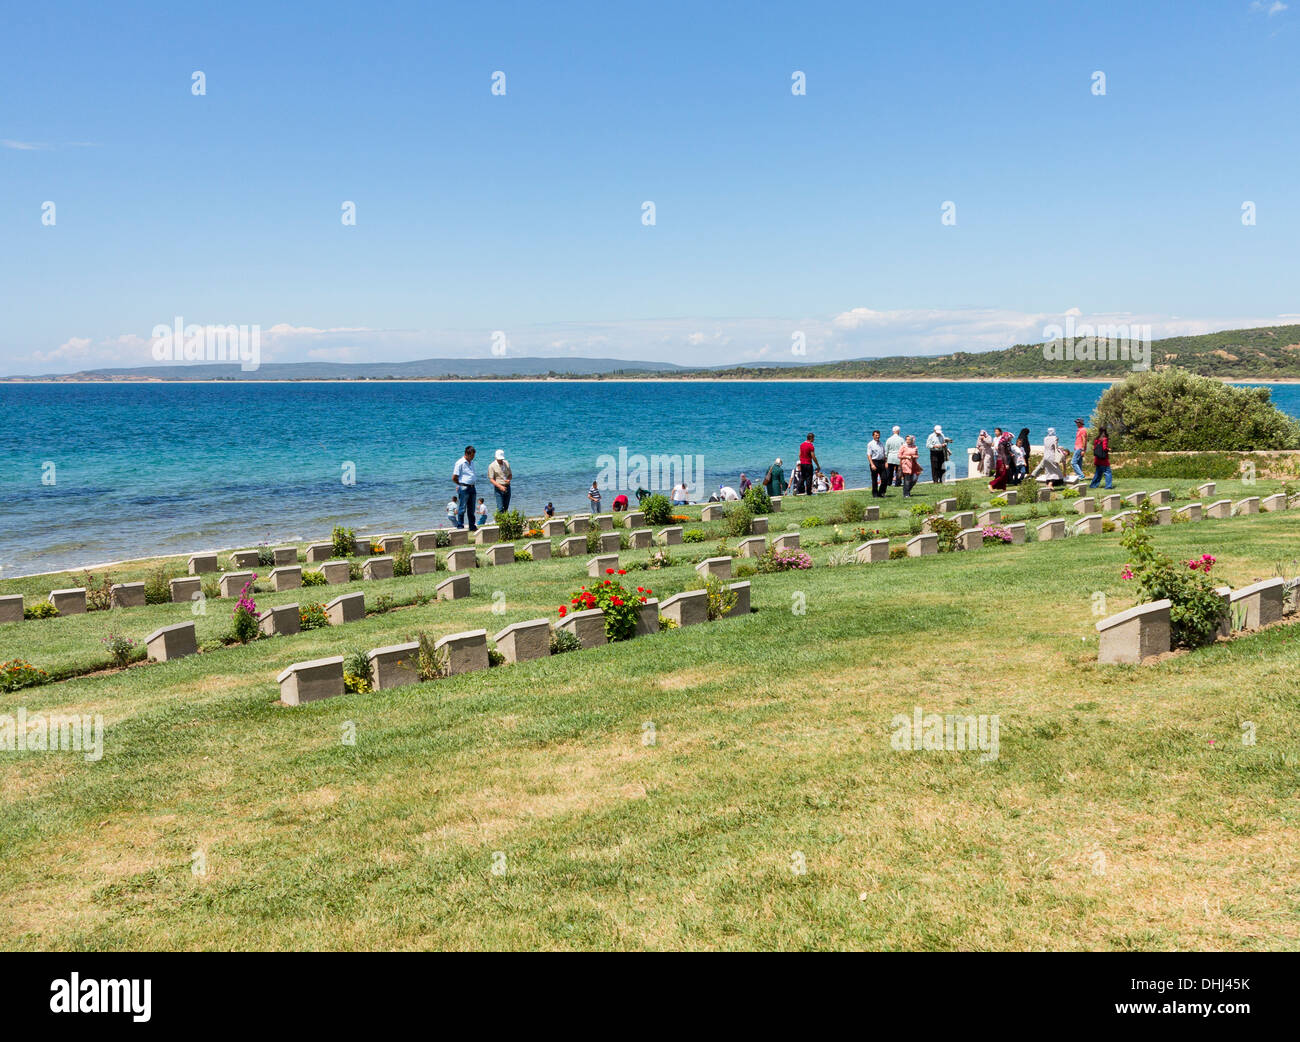 People at the the WW1 Gallipoli campaign war cemetery at Anzac Cove, Turkey - Stock Image